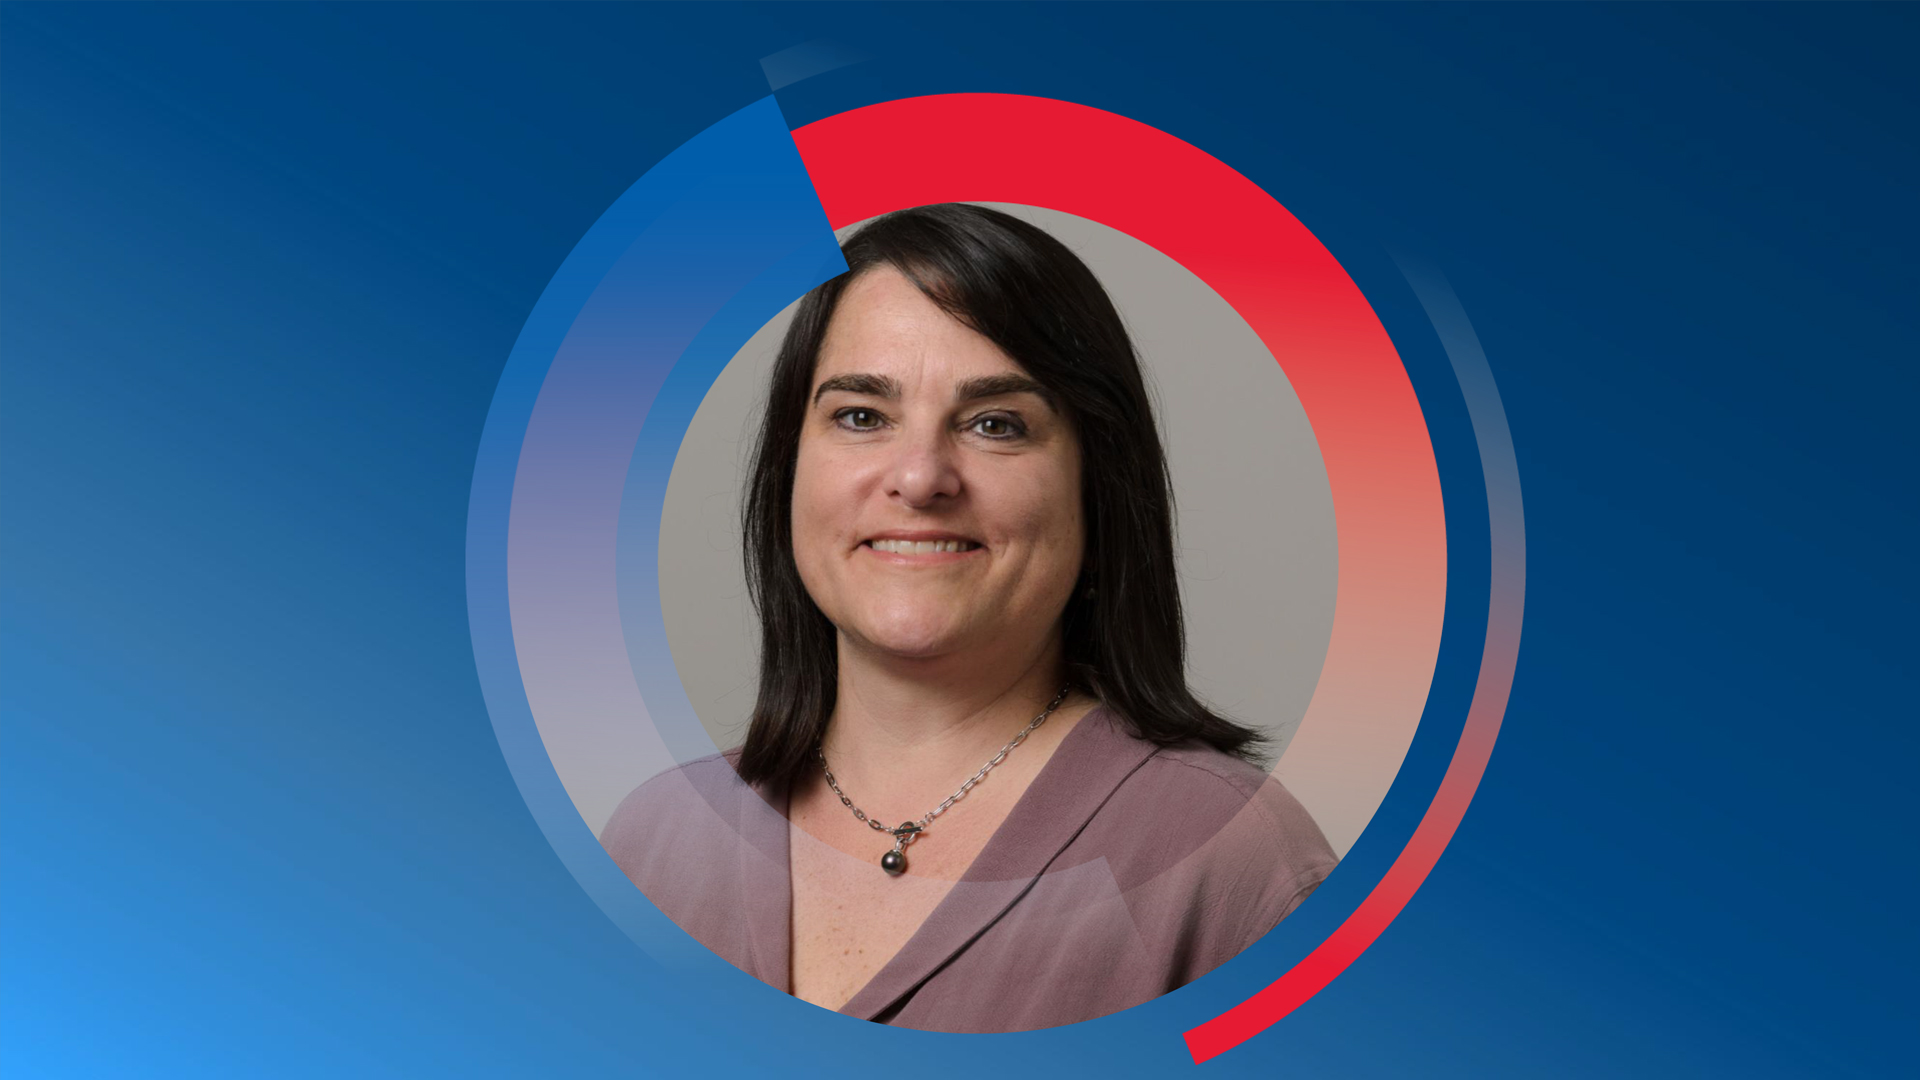 SMU's announces Holly Jeffcoat as the new dean of SMU Libraries.